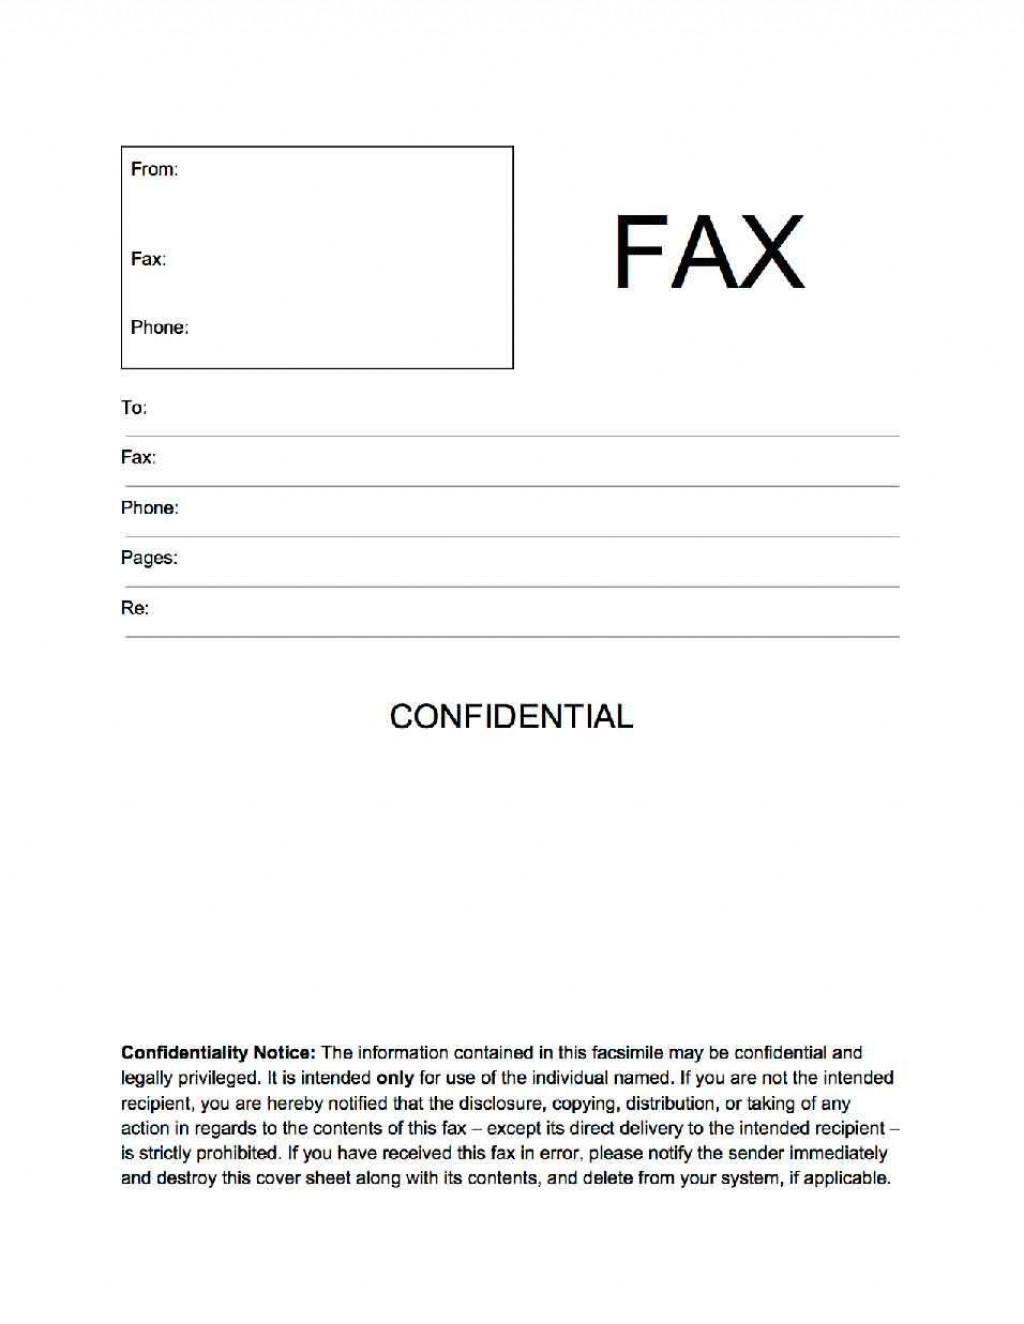 002 Unbelievable General Fax Cover Letter Template Concept  Sheet Word Confidential ExampleLarge